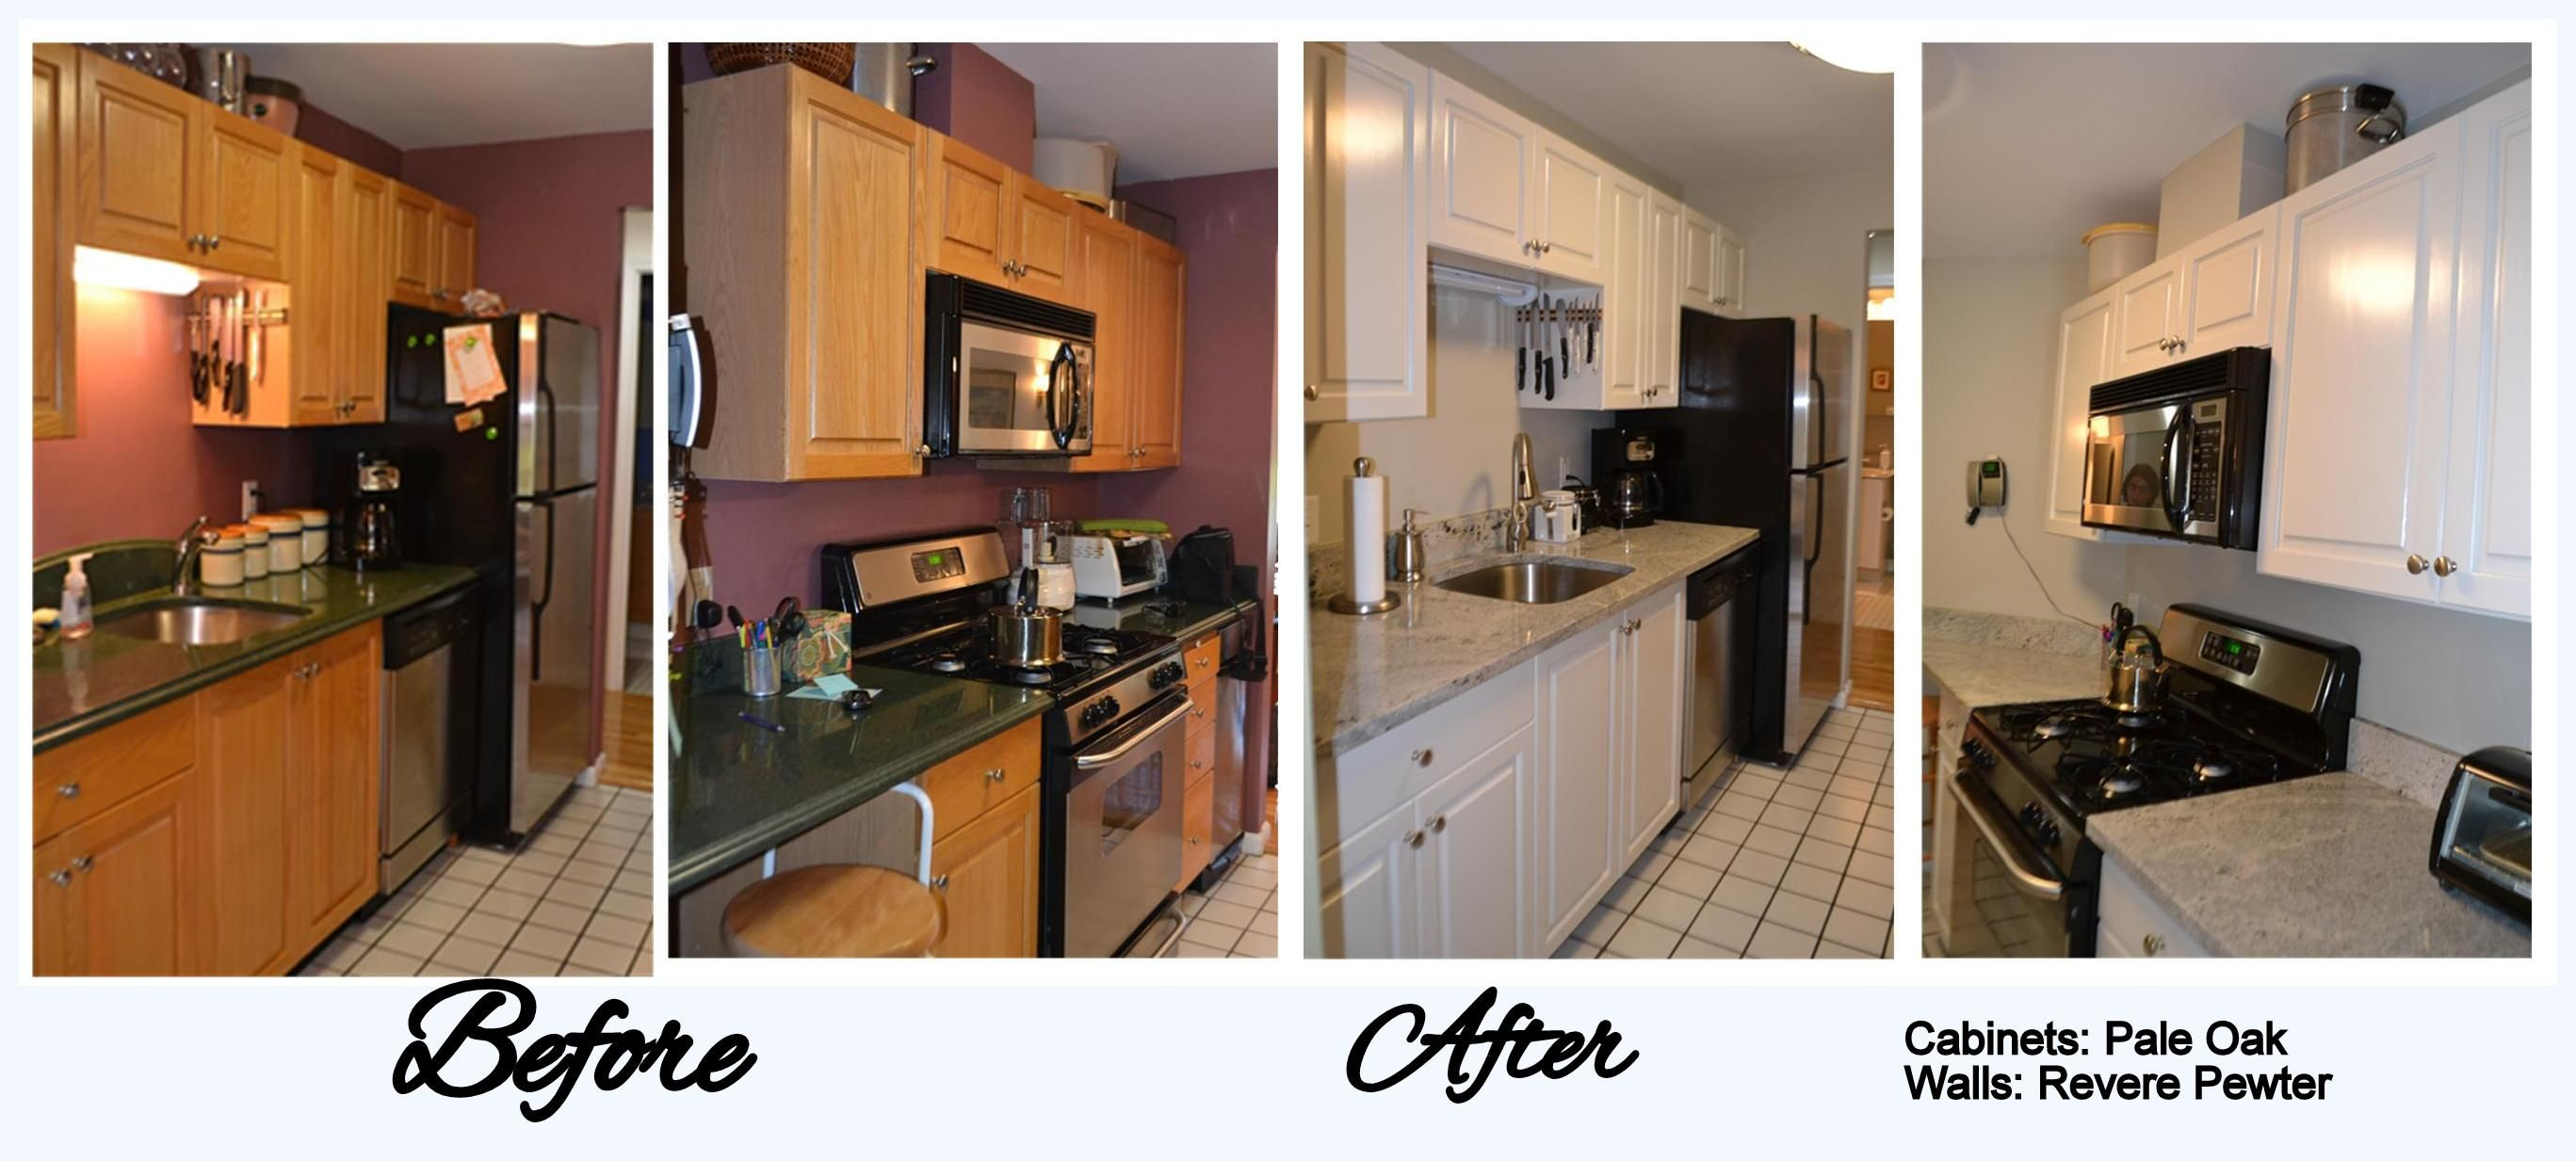 Kitchen Cabinets Refacing Before And After kitchen cabinet refacing before and after photos - google search